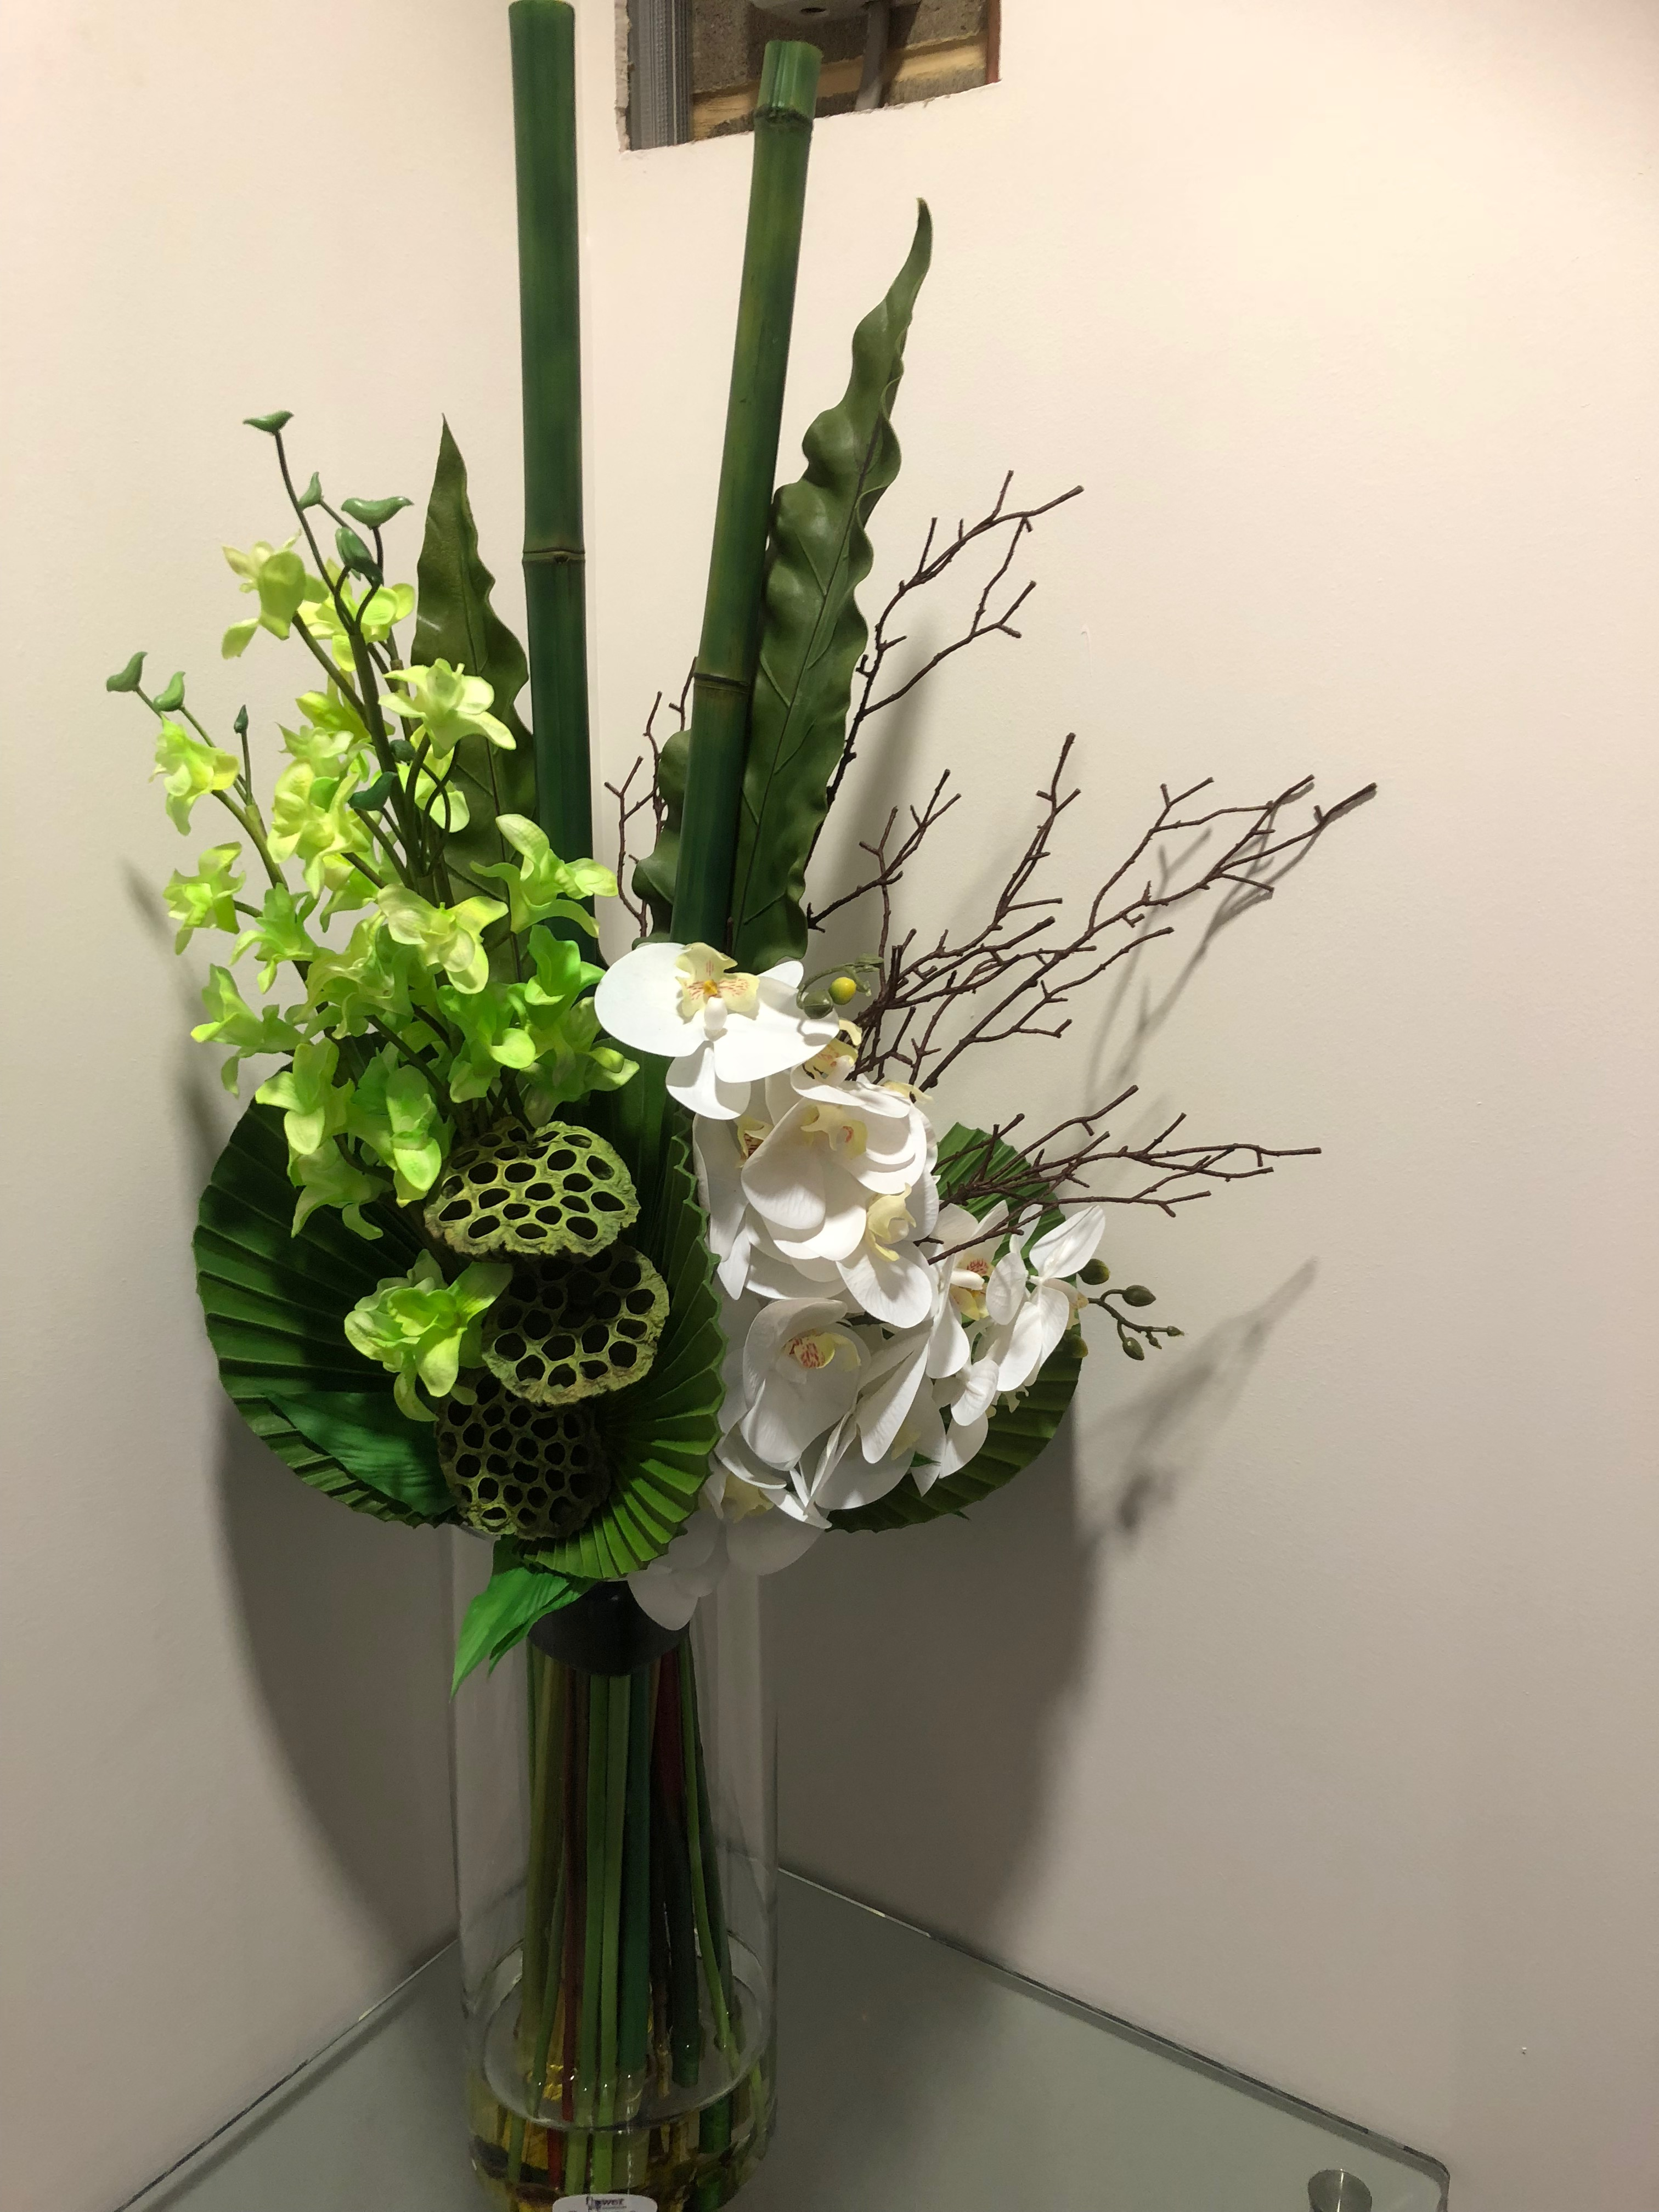 https://www.flower-genie.co.uk/profile/Orchid Mix with seed pod / Green Bamboo